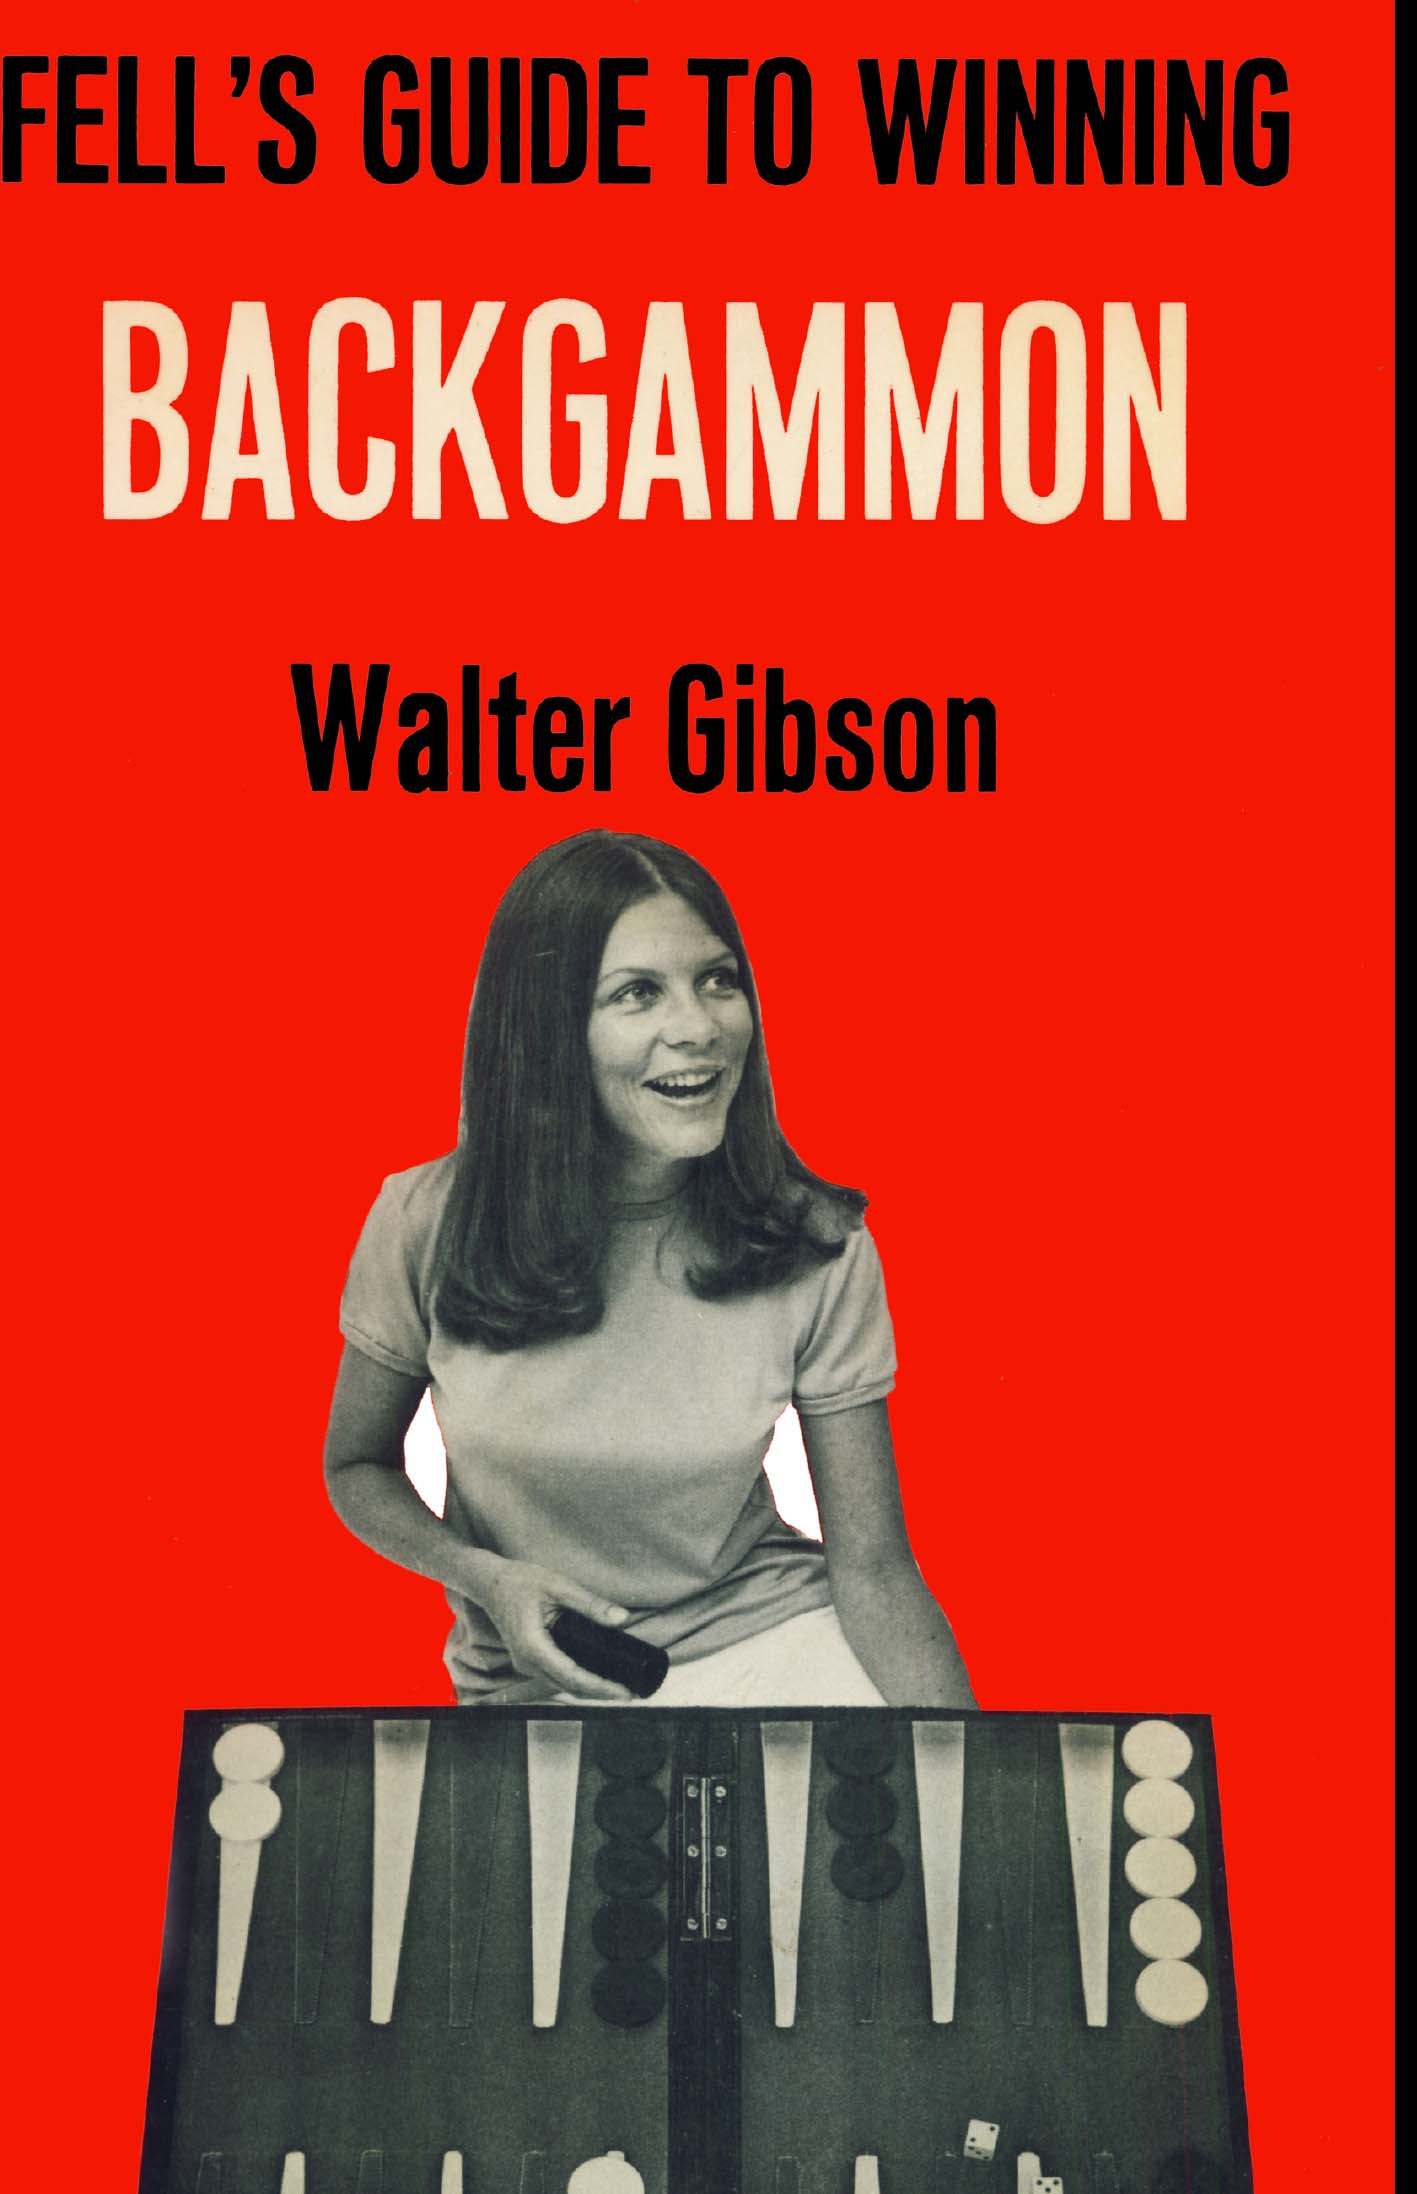 Guide to Winning Backgammon